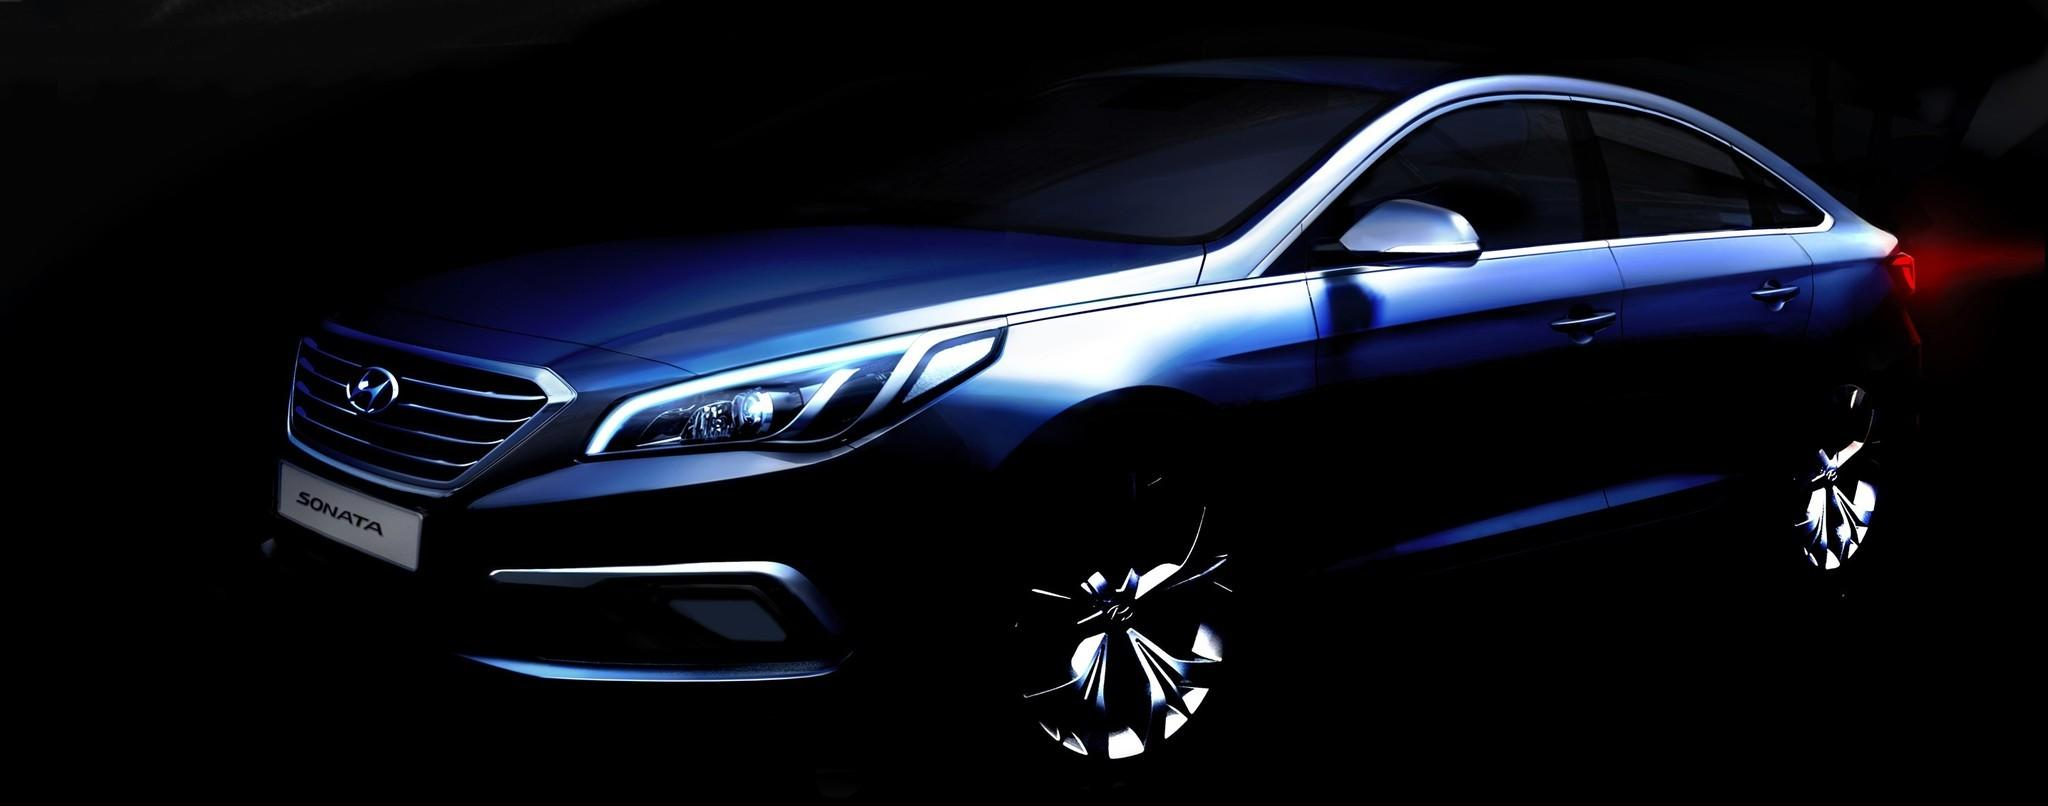 Hyundai's all-new Sonata is seen in a rendering.